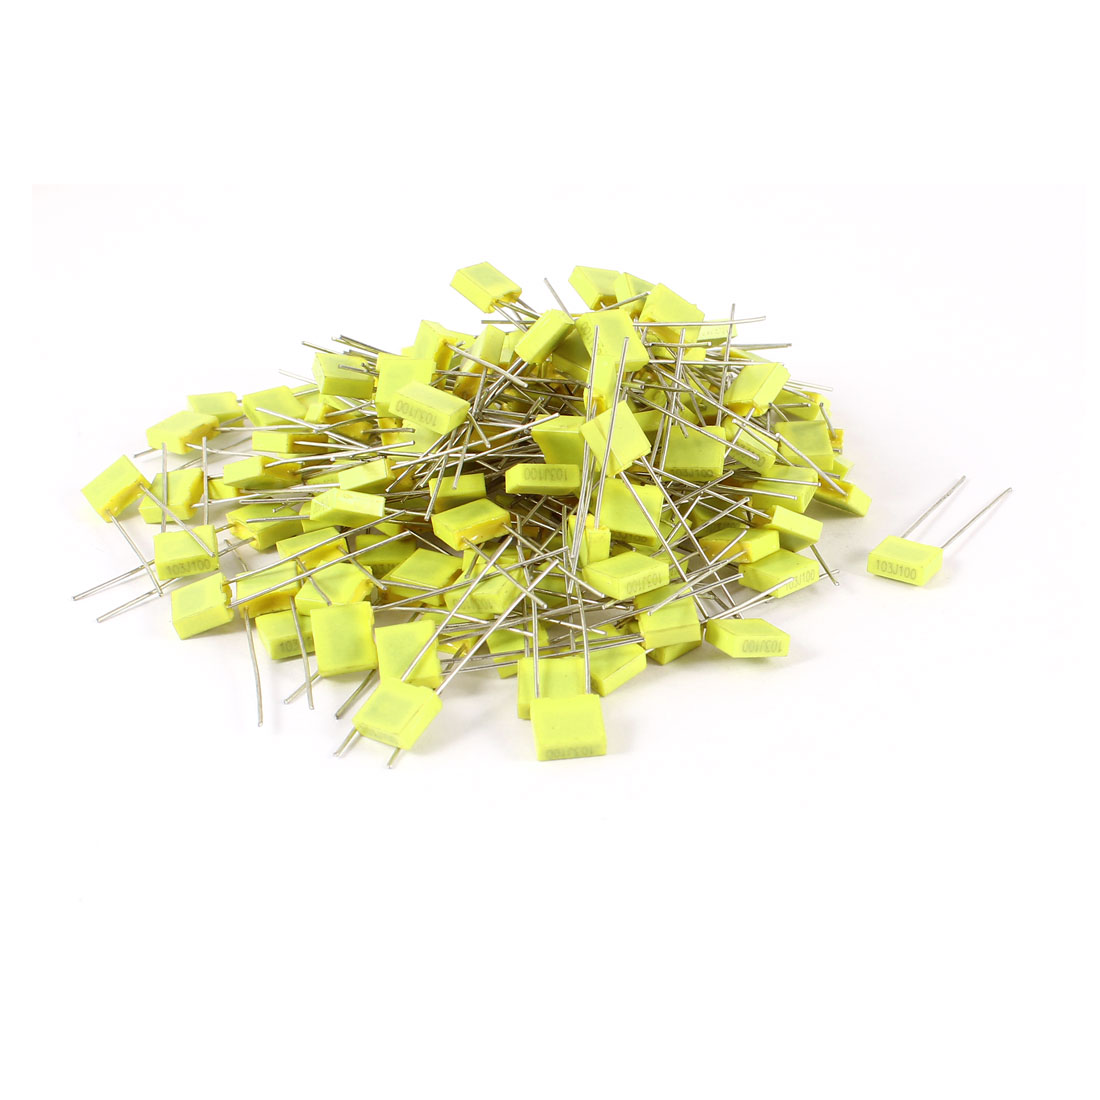 150 Pcs 100V 0.01uF 10NF Radial Lead Box Type Film Correction Capacitors Yellow